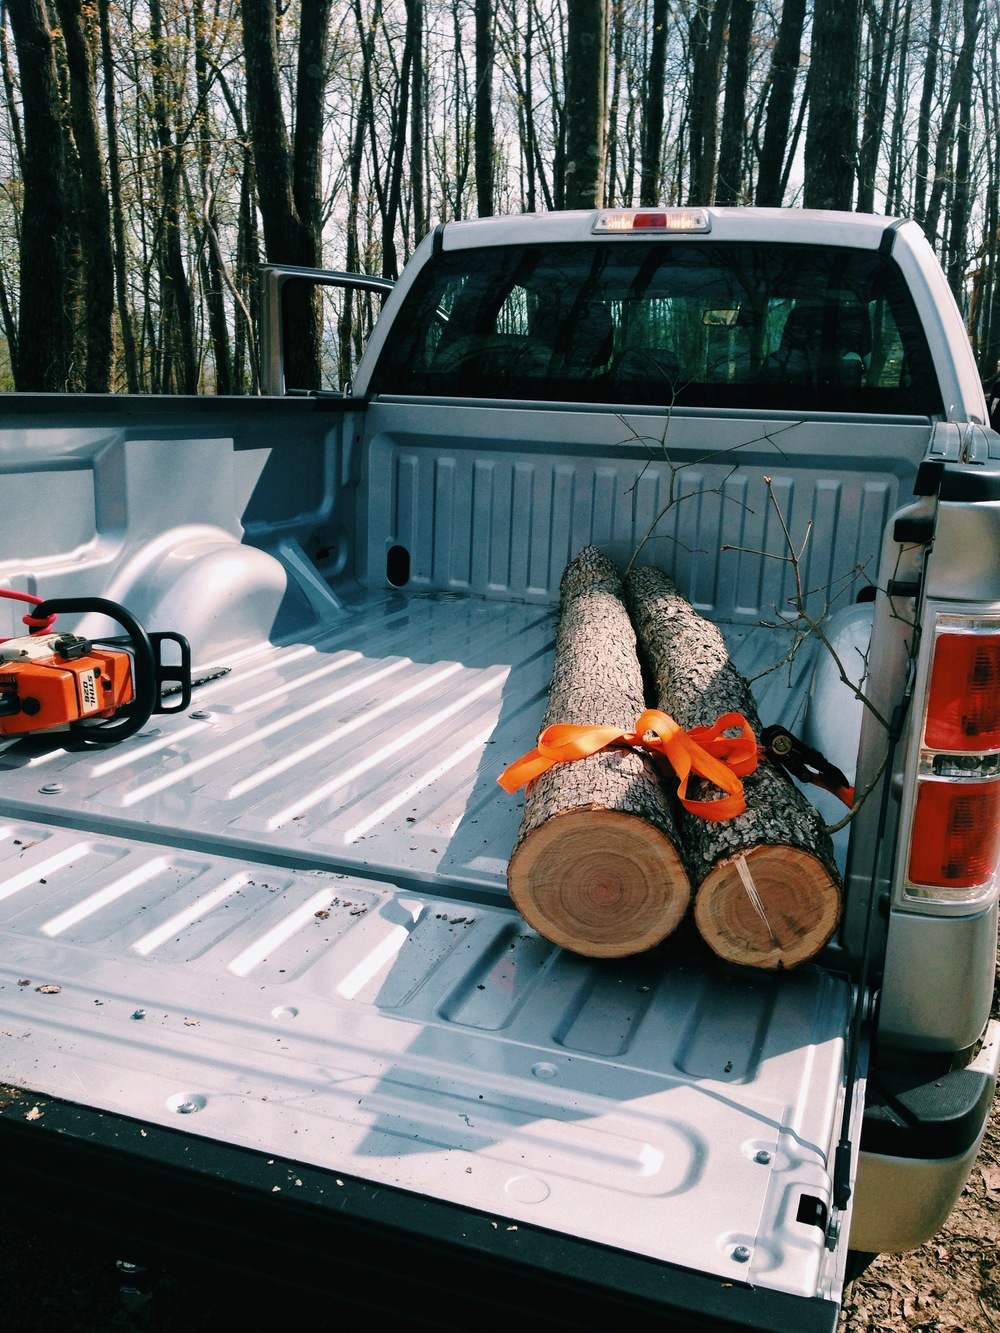 Logs in the truck, ready to go home.